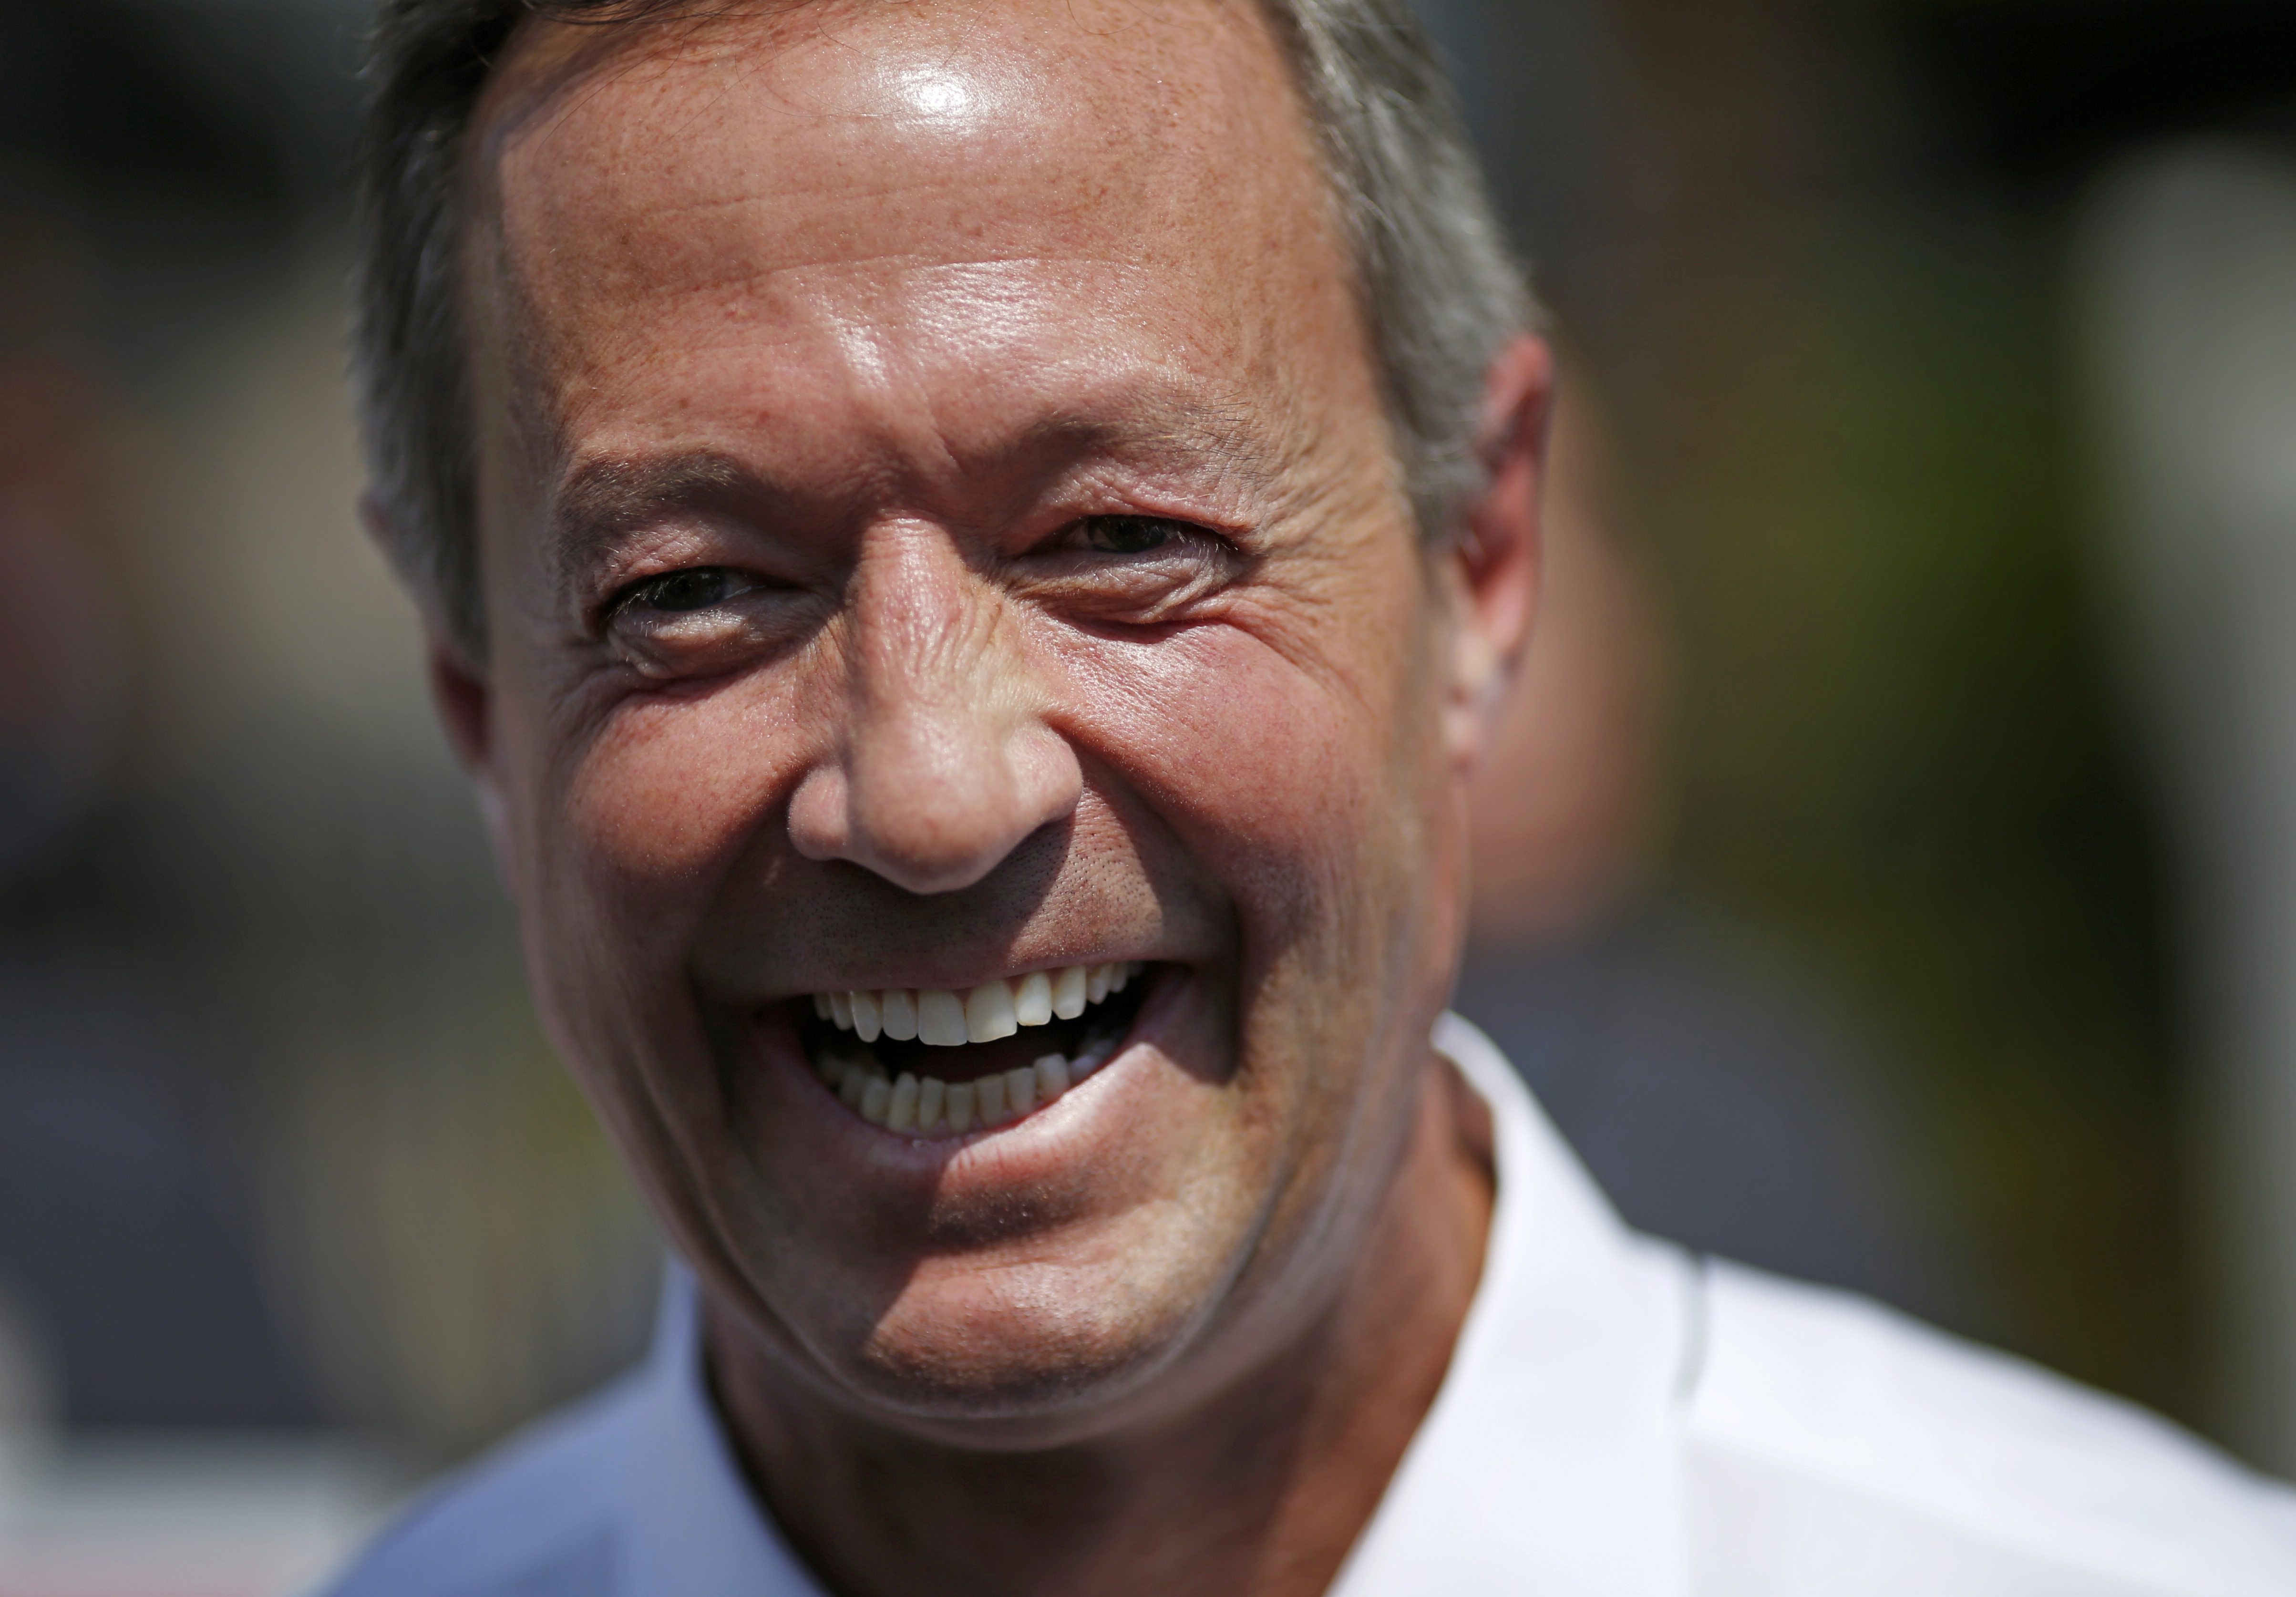 For the right price, Martin O'Malley will sing you a song